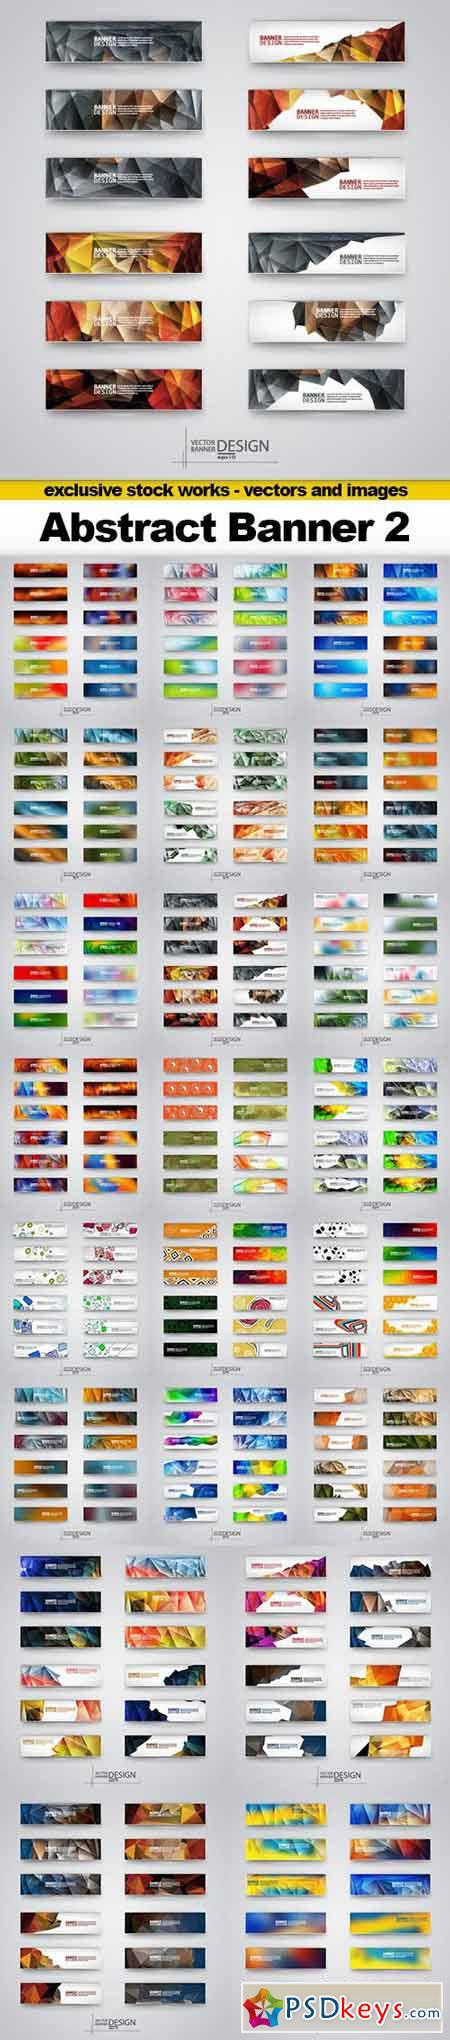 Abstract Banner Vector Collection 2 - 22x EPS